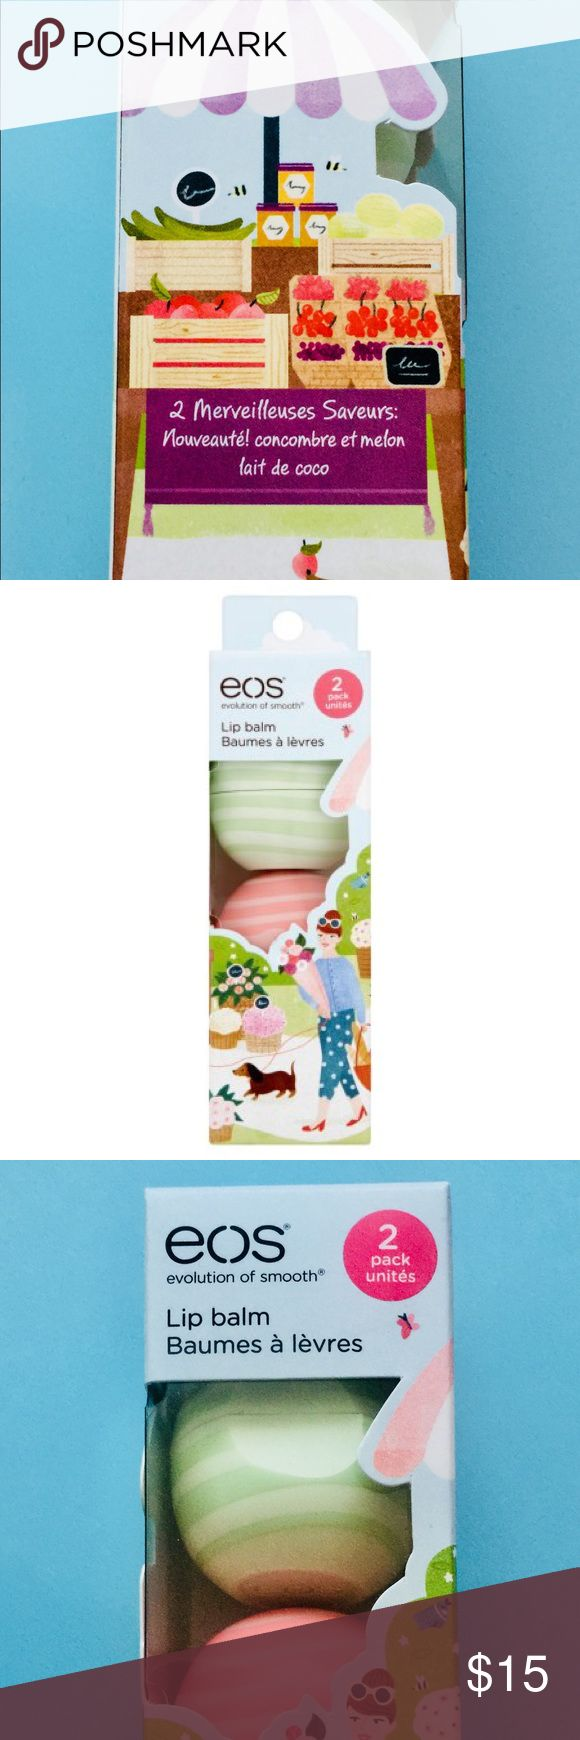 Limited Edition EOS Lip Balm, 2 pack. BRAND NEW This is a 2 pack of EOS lip balm. One of them is a melon flavor, the other is coconut milk flavored. They are brand new, never used, sealed in the box. They have been handled with love & care in a smoke/drug-free household. Hope you enjoy this item! It makes a great gift. If you have any questions, PLEASE do not hesitate to contact me! 😊 The item will be shipped out one business day after I recieve payment, or the same day if I have time…